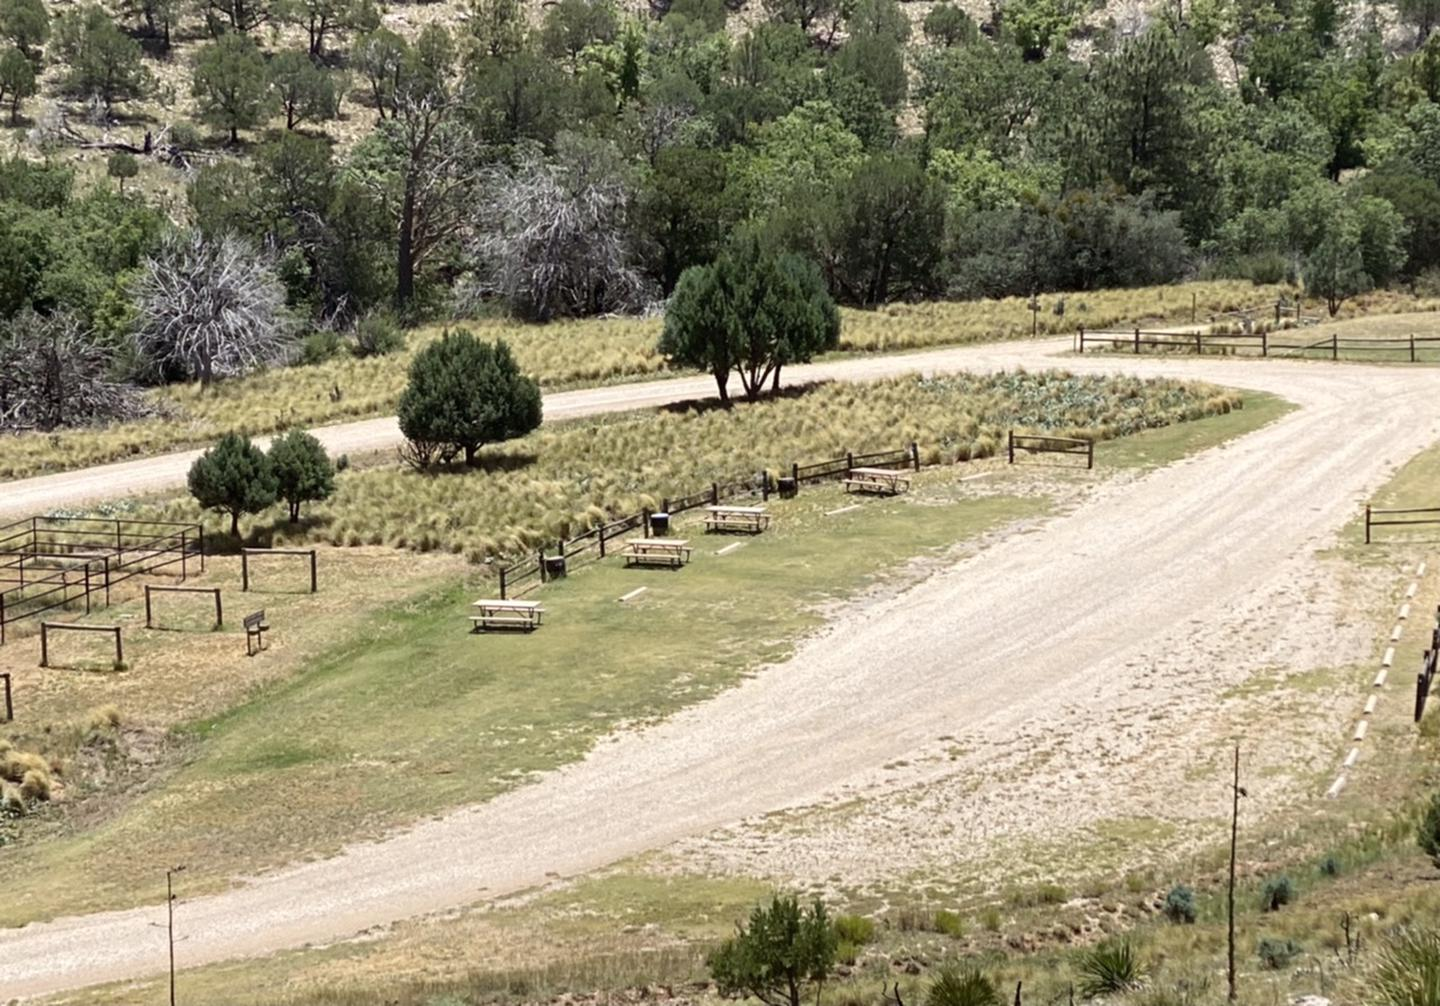 Dog Canyon RV campsite area. Four RV sites available and are located next to the trailhead and horse corals. Overview of the four Dog Canyon RV sites.  Trailhead parking is just across from the campsites.